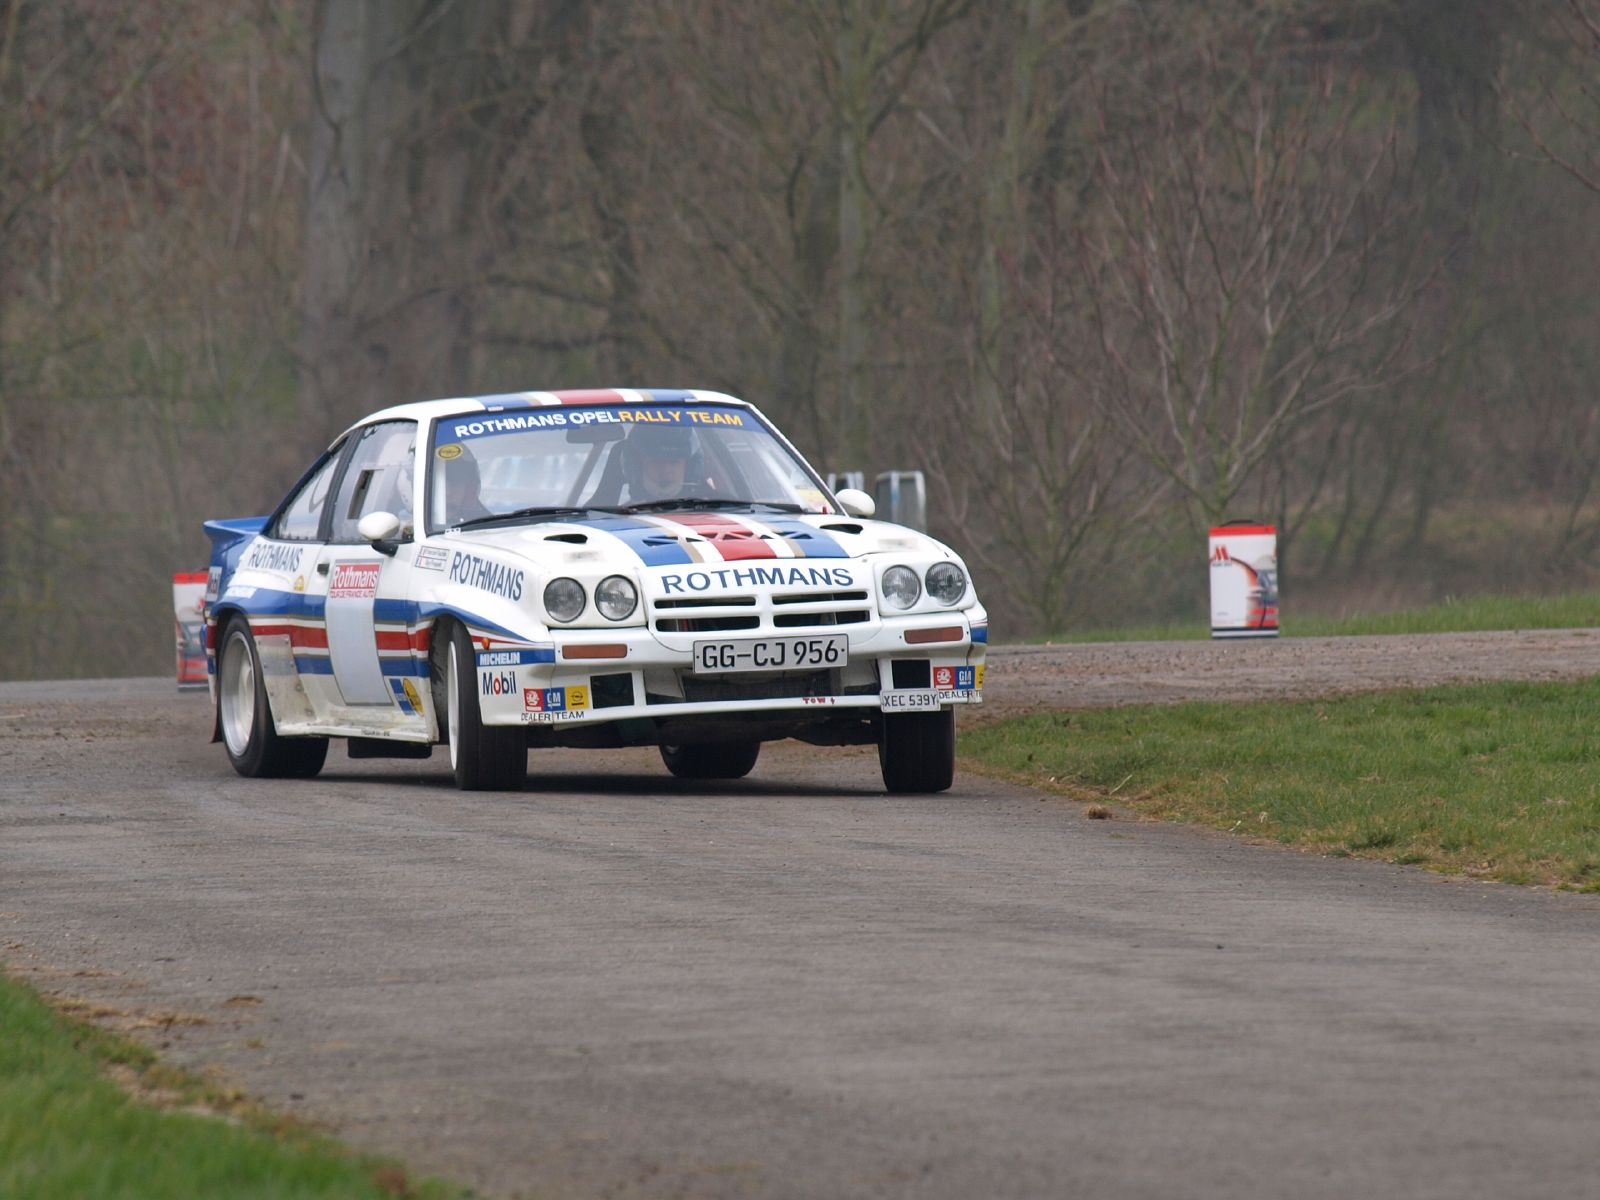 http://upload.wikimedia.org/wikipedia/commons/b/bb/Opel_Manta_400_-_Race_Retro_2008_02.jpg